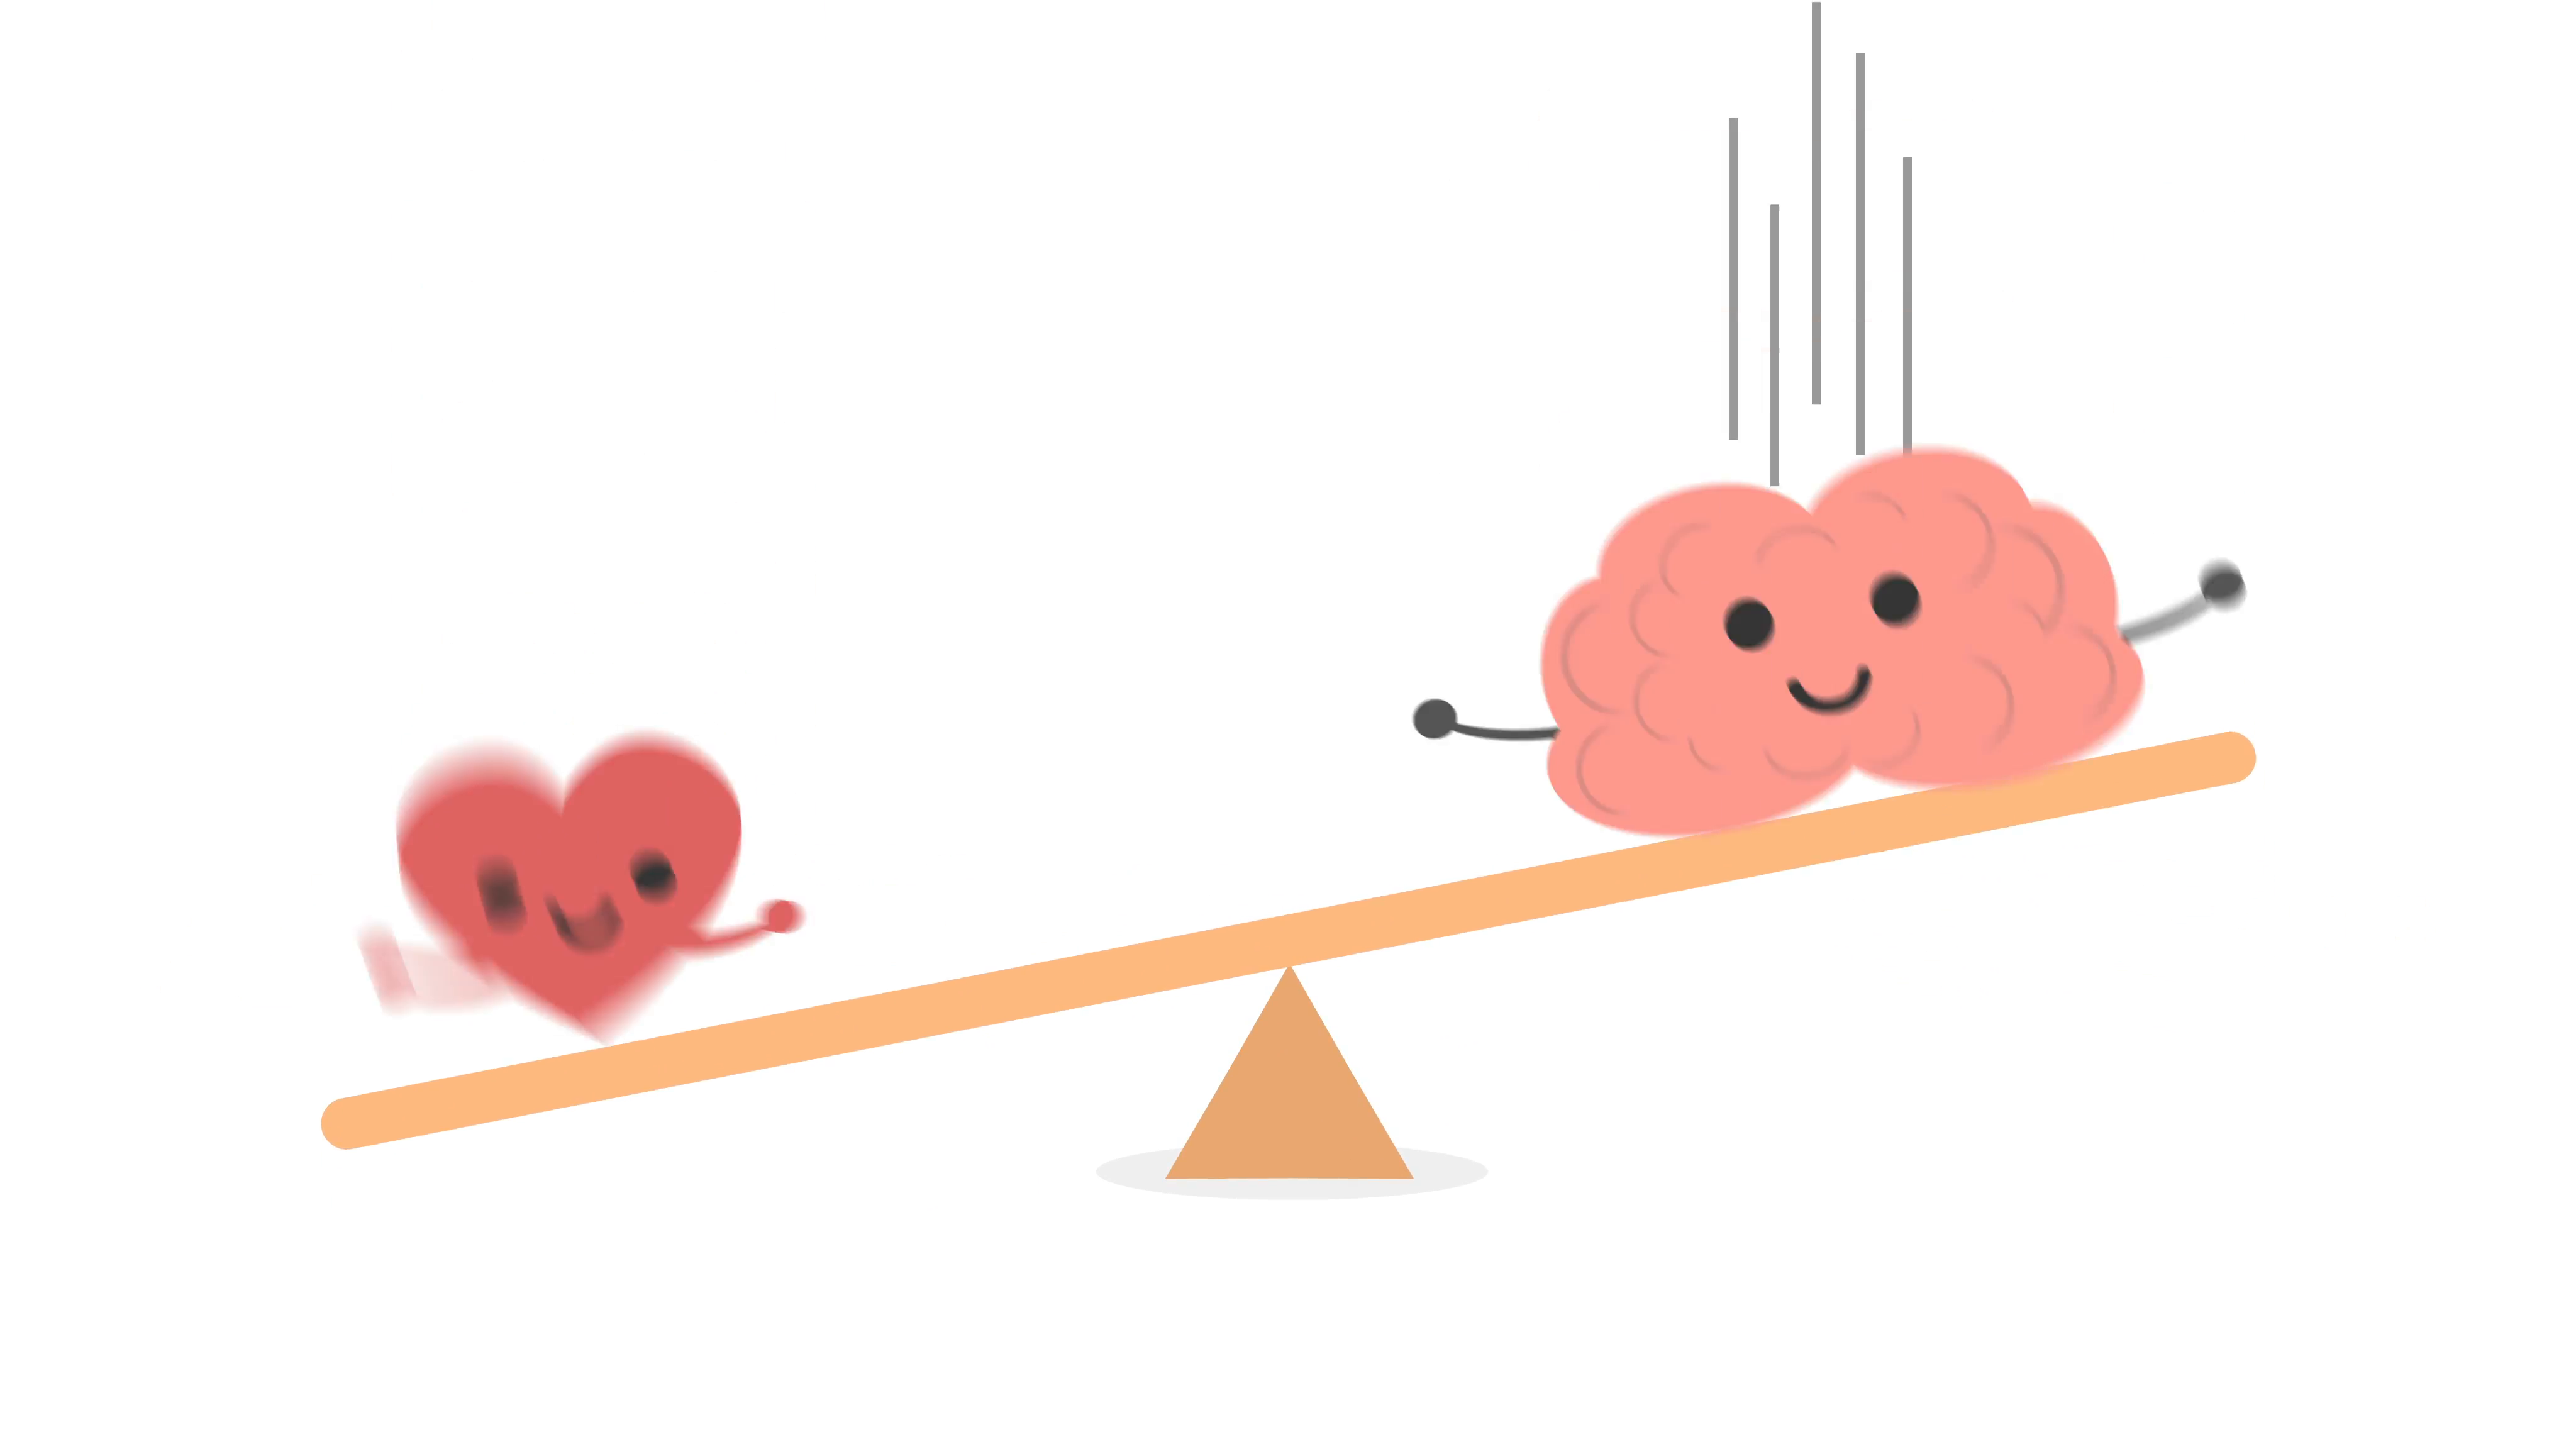 Balance between and heart. Brain clipart emotion